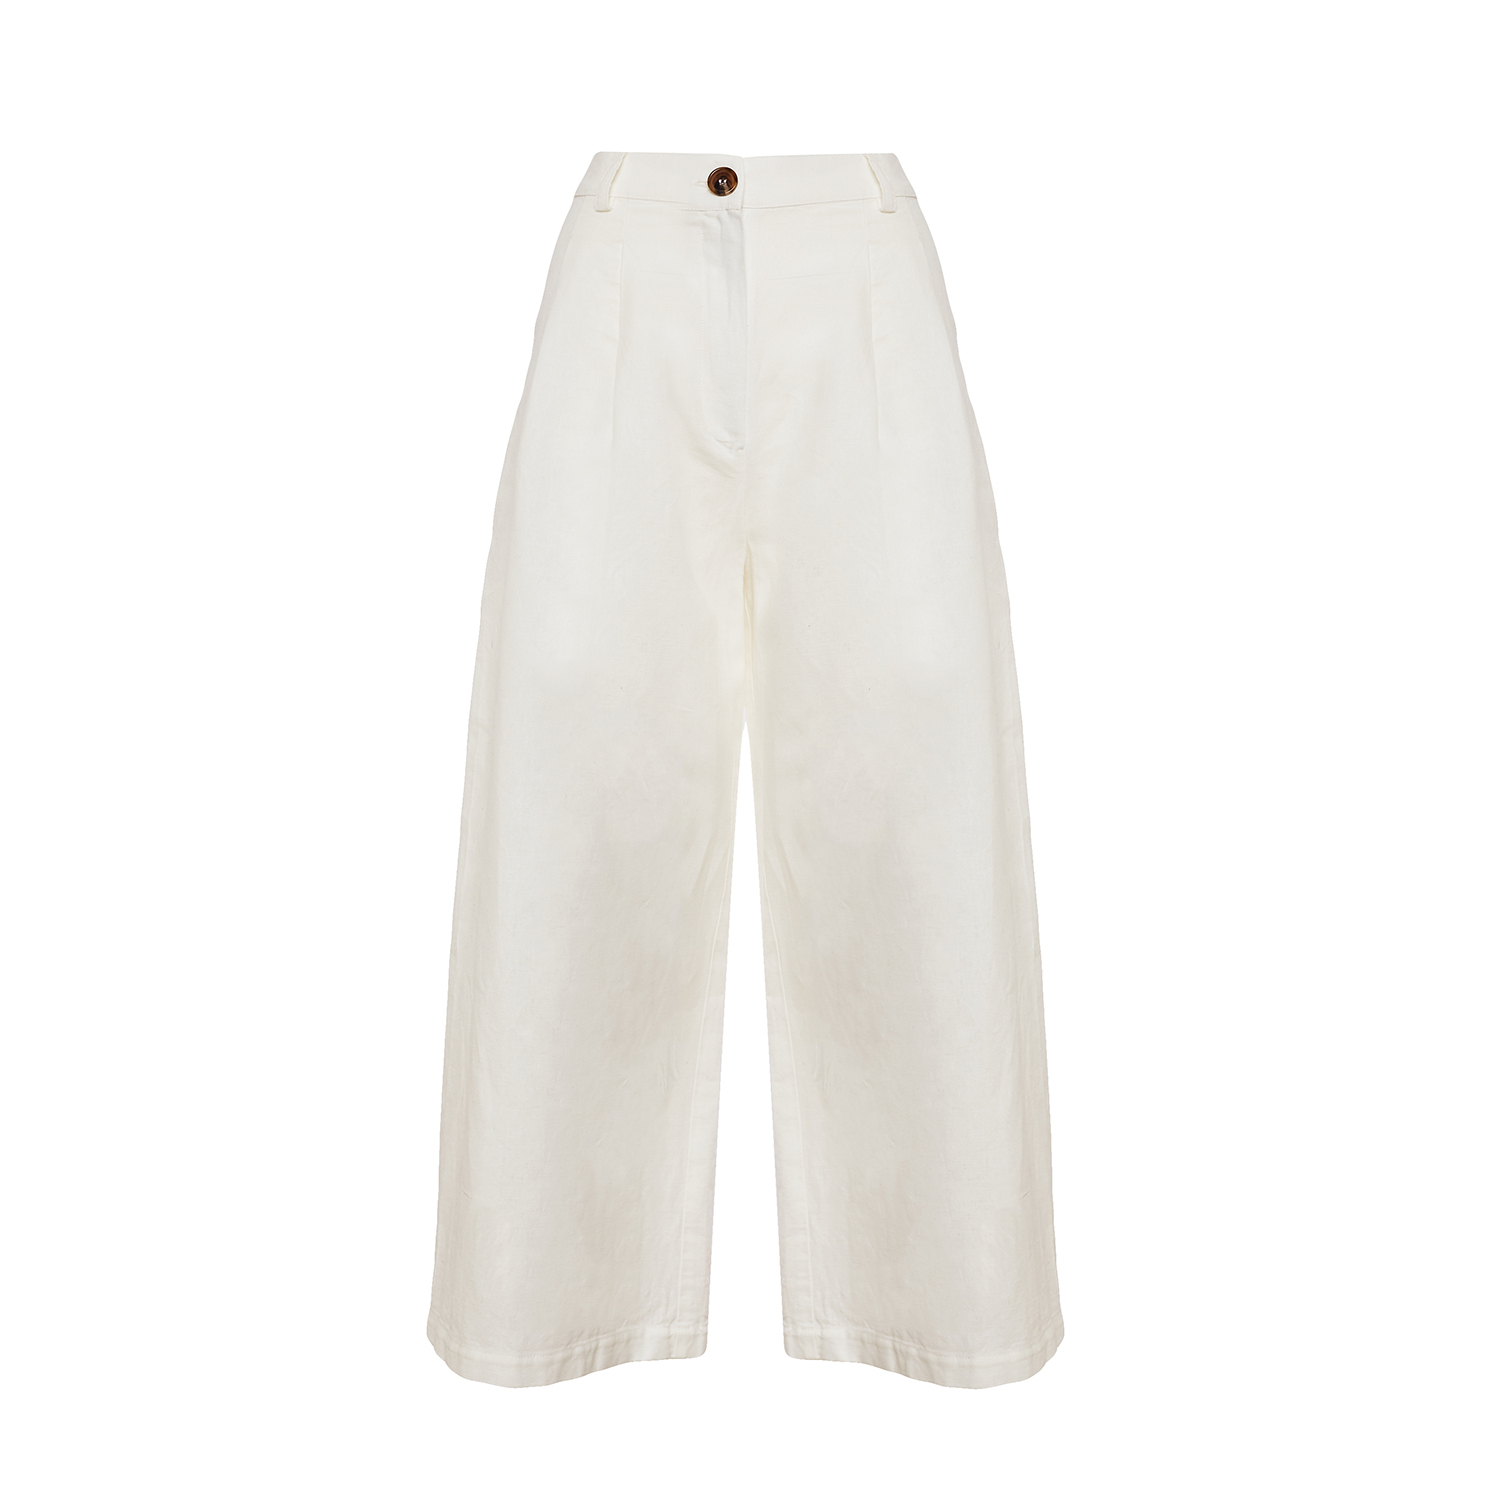 Linda Raff Collection -Beach Pants CORN White Linen